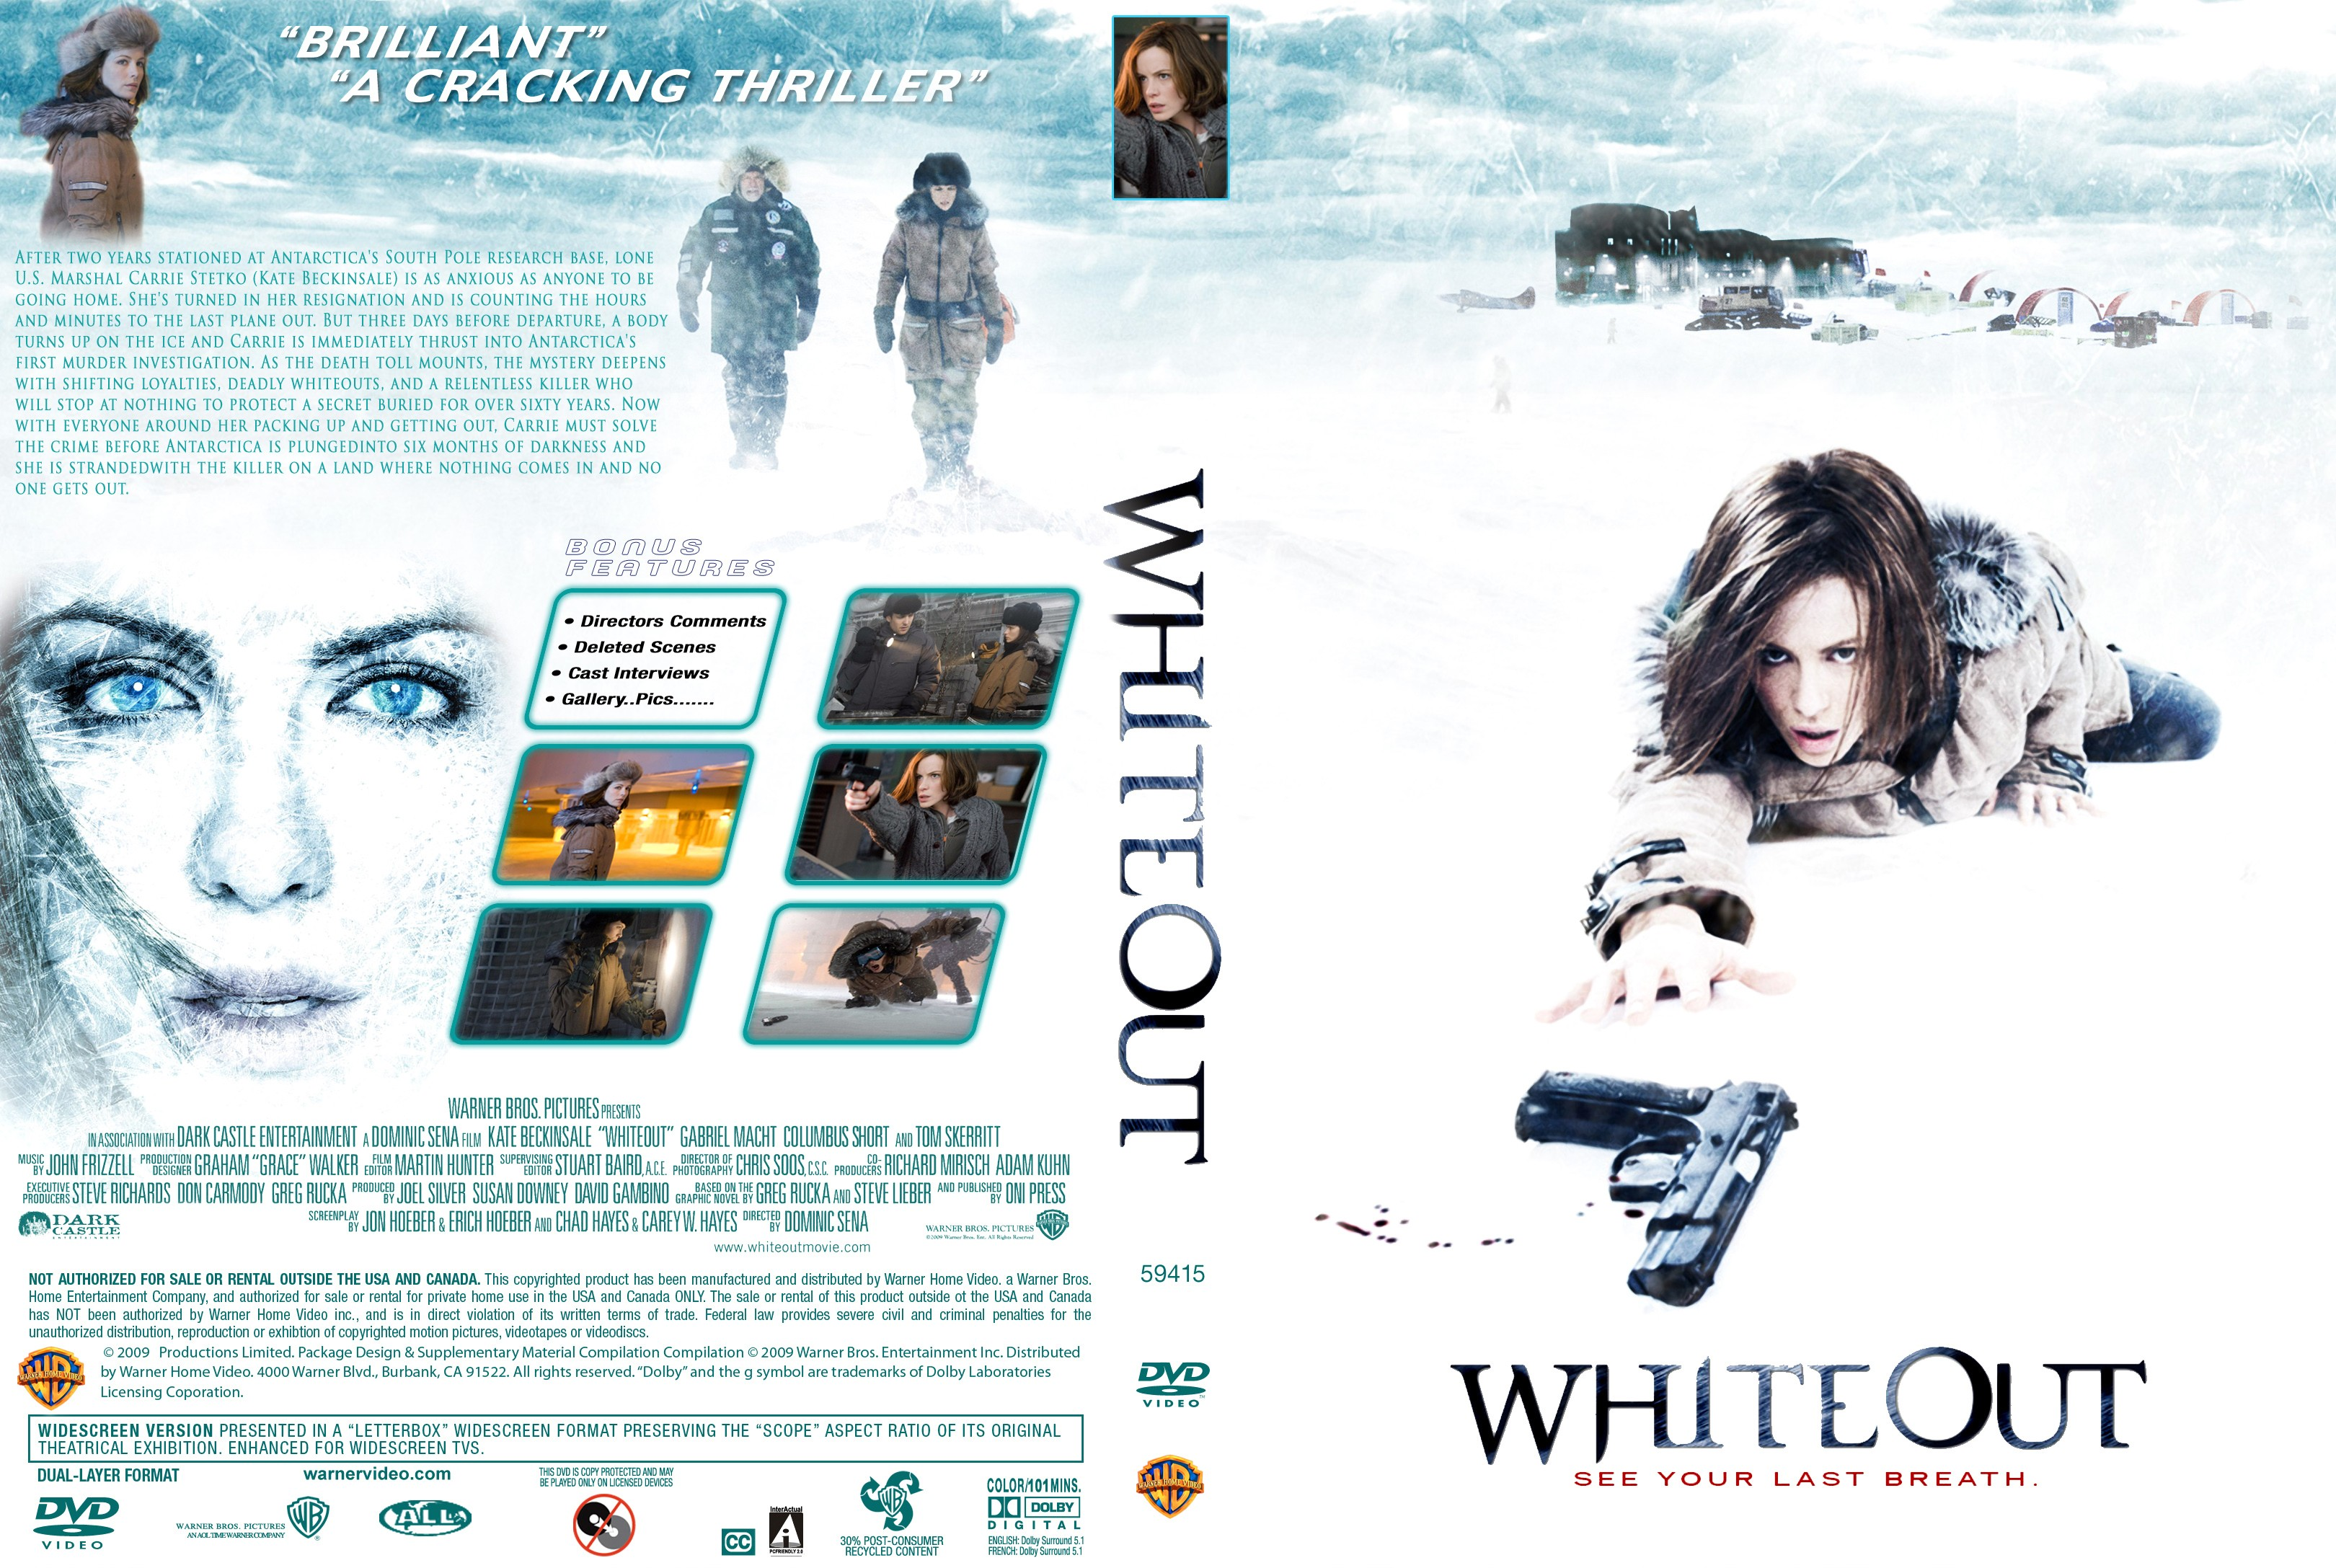 Whiteout Movie Poster Images For gt Whiteout Movie